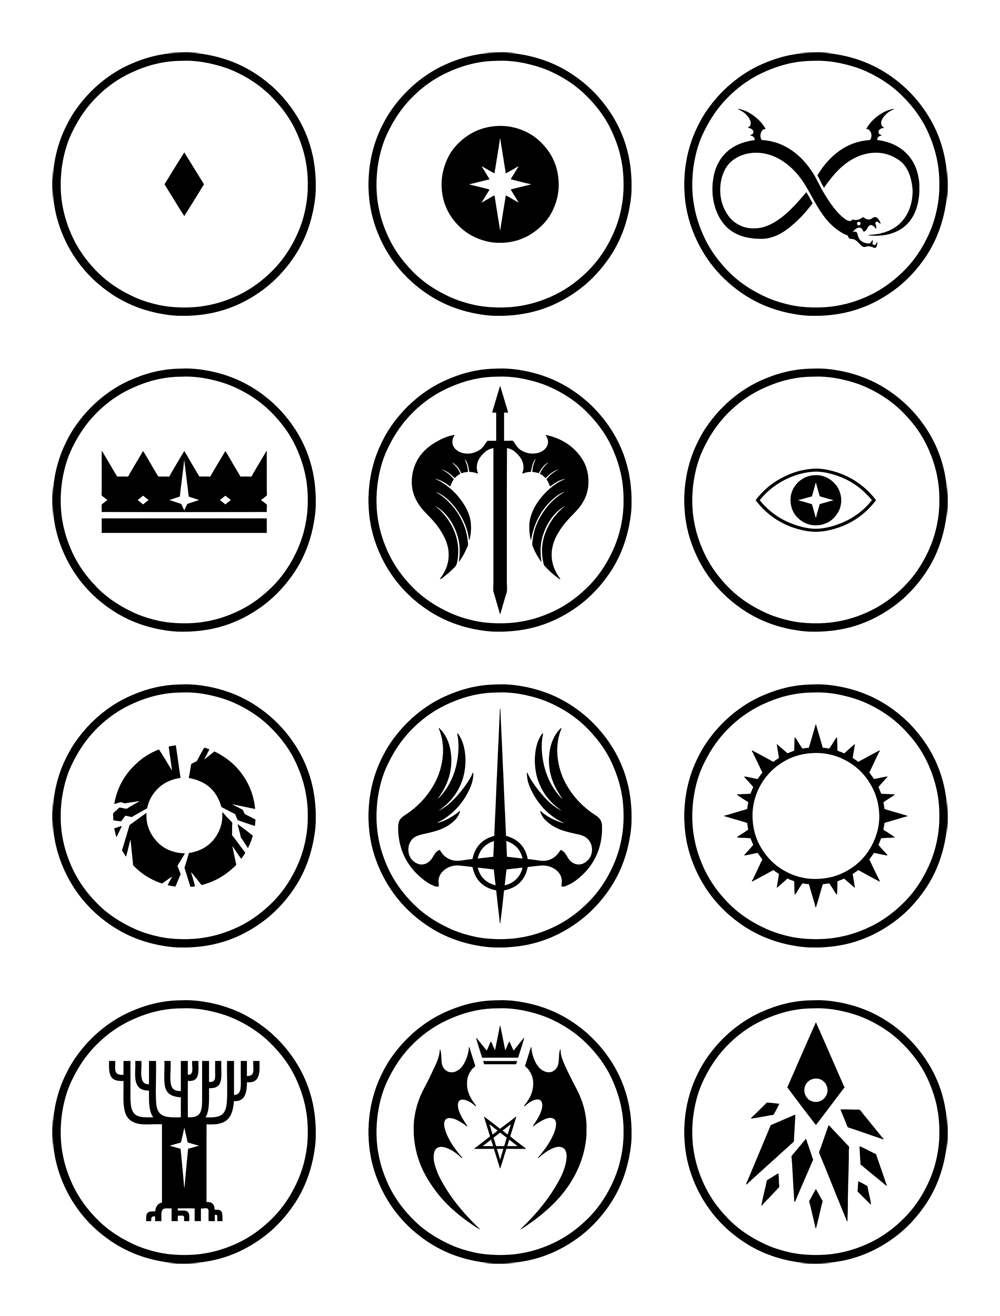 Object Classes From Https Sunnyclockwork Deviantart Com Art Object Classes 656940877 Icon Scp Enochian Foundation It is the shadow of the sephirah keter (the crown). object classes 656940877 icon scp